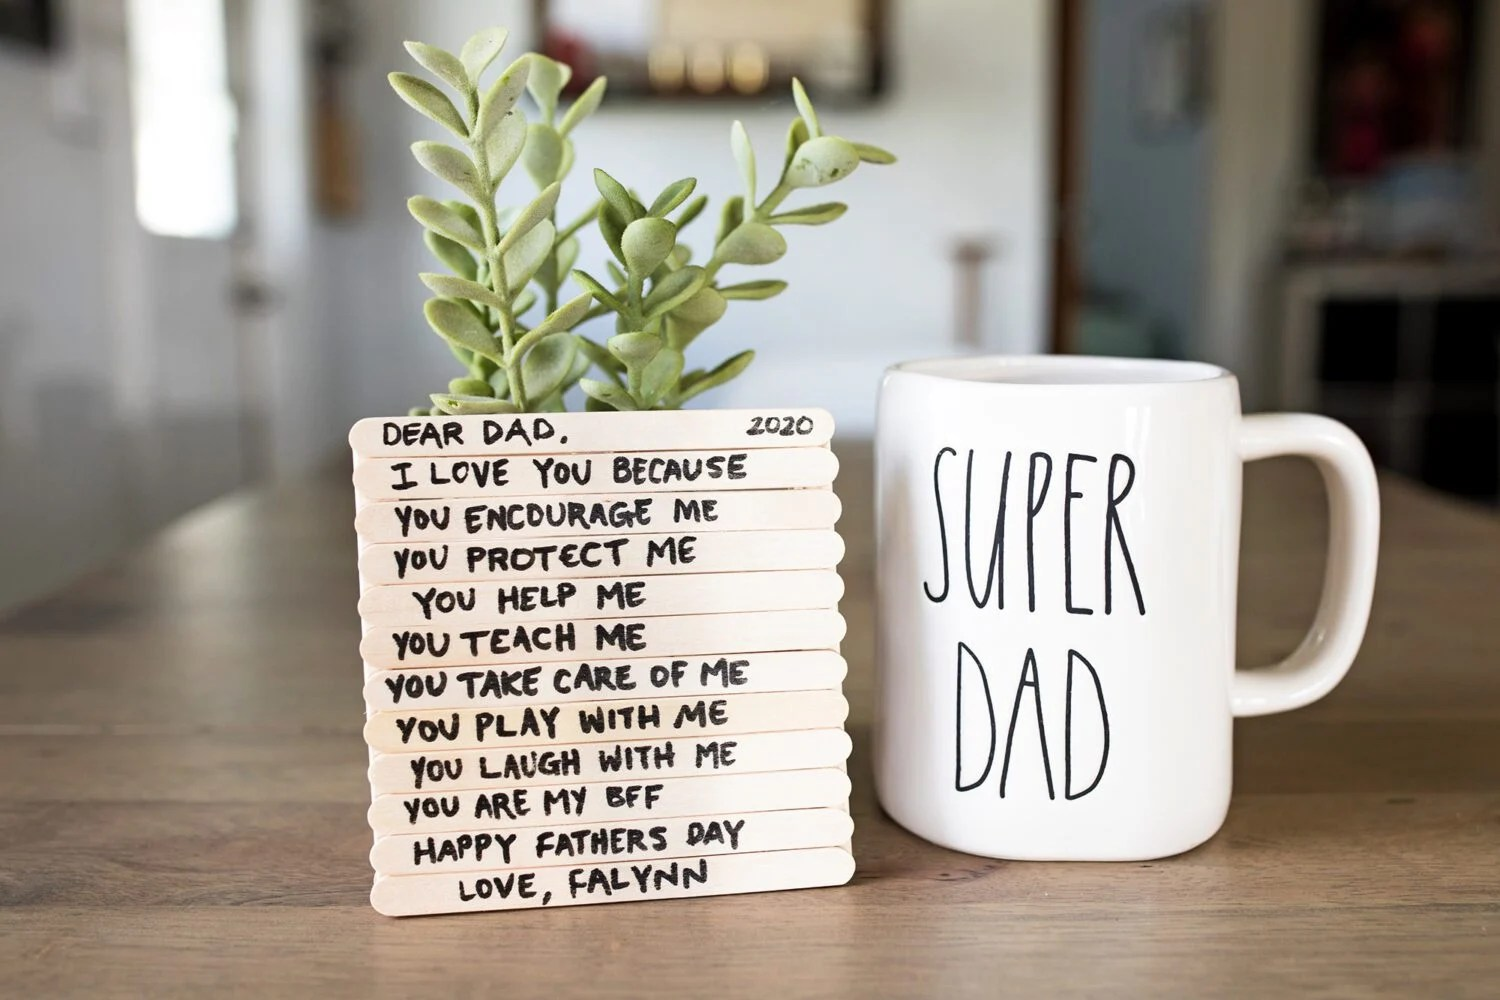 handmade father's day coaster next to super dad mug